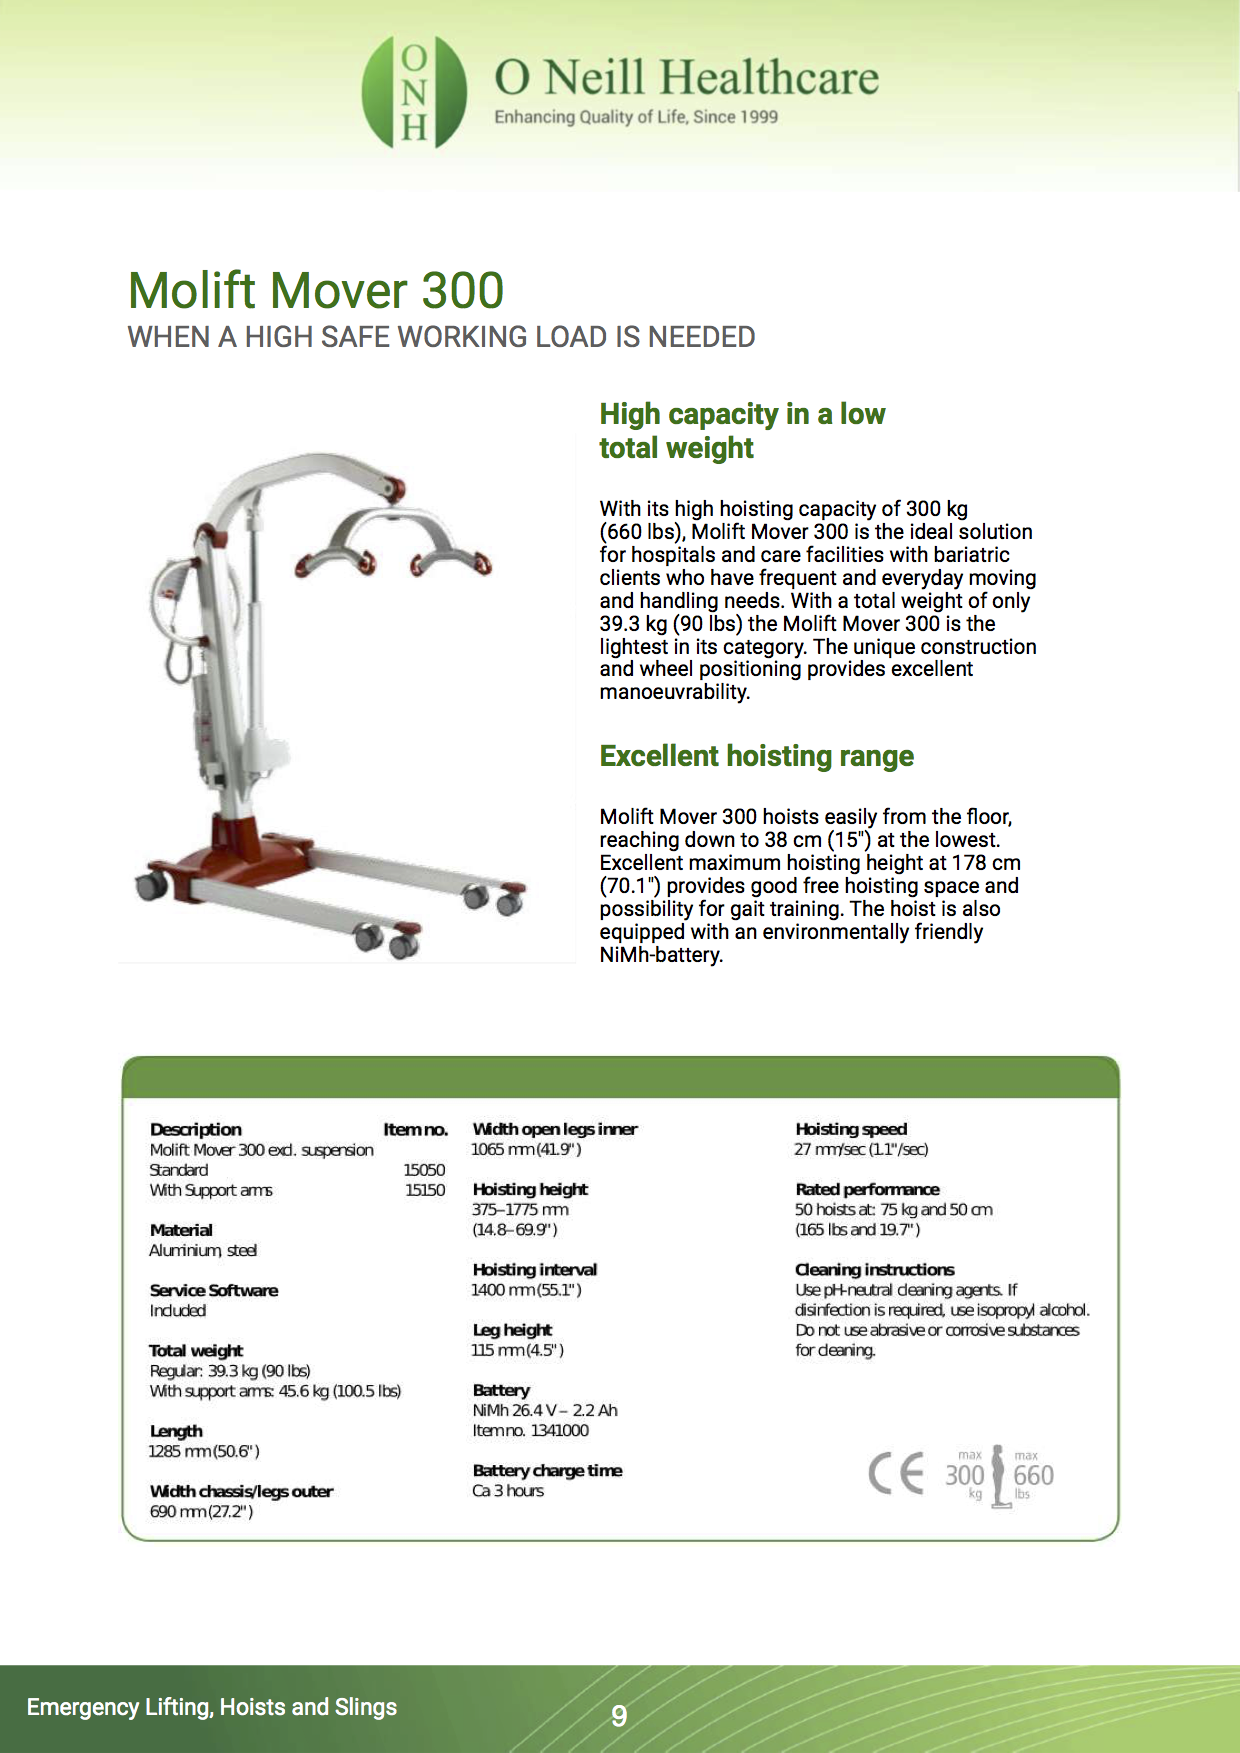 Molift 300 Featured Image